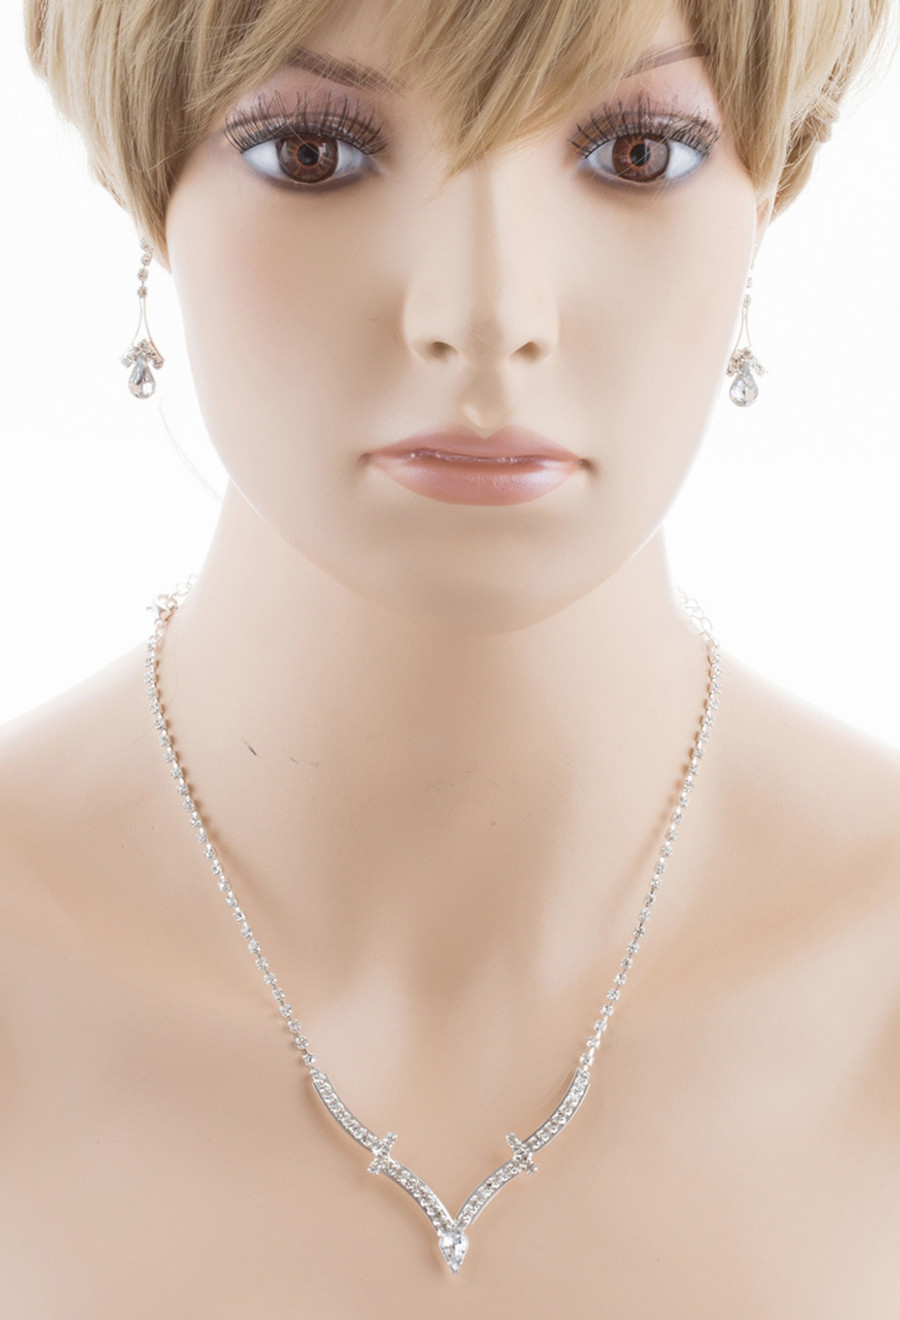 Bridal Wedding Jewelry Set Crystal Rhinestone Simple Curved V Drop Necklace CL